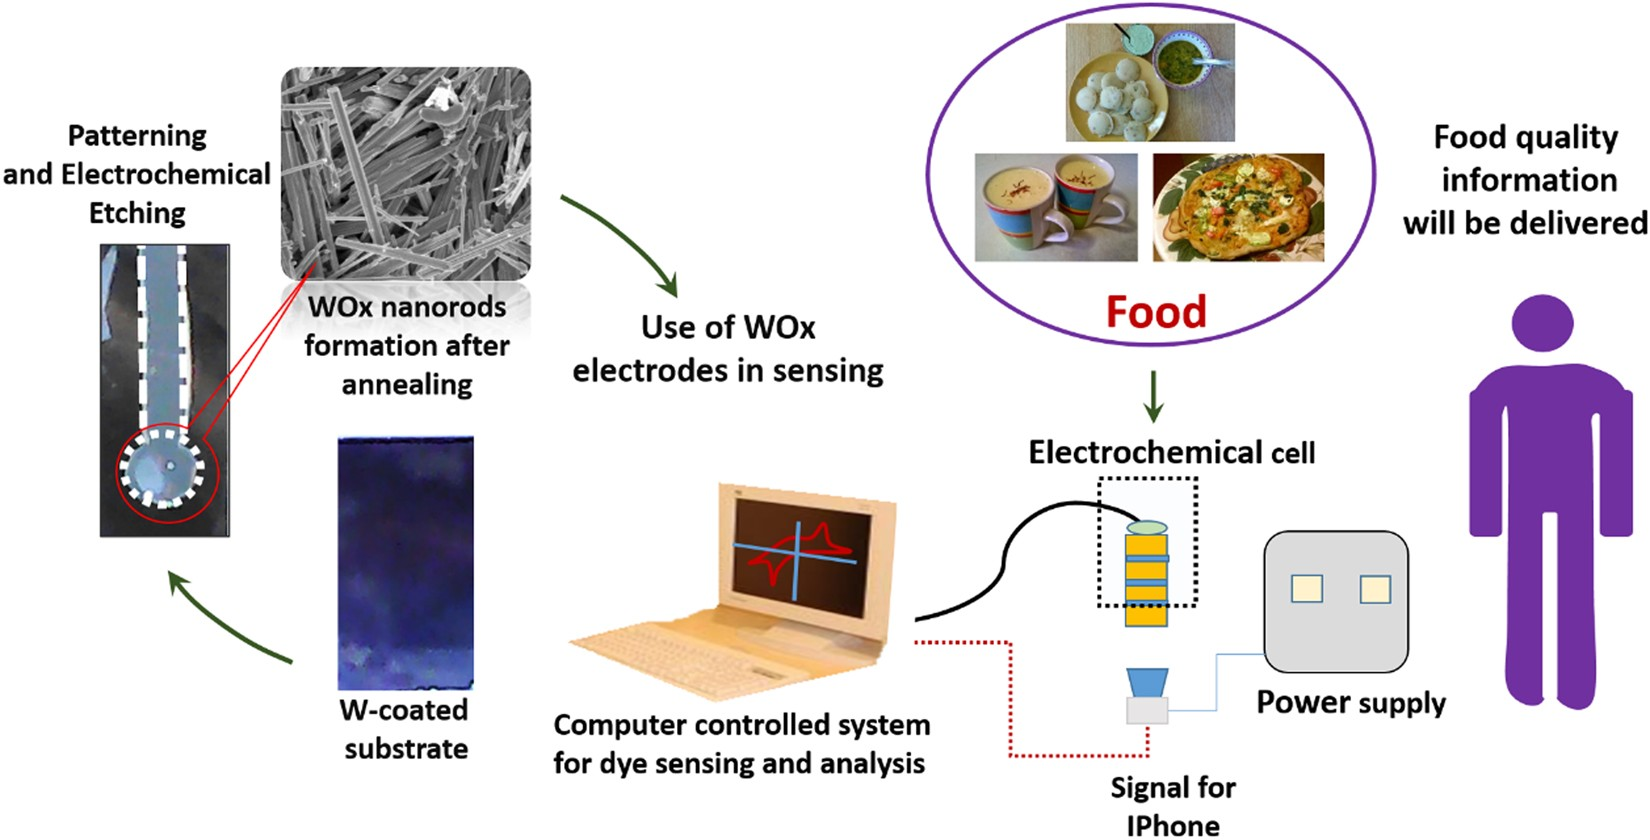 Hybridized Tungsten Oxide Nanostructures For Food Quality Assessment Ccvs Current Controlled Voltage Source In Practice Electrical Fabrication And Performance Evaluation Scientific Reports